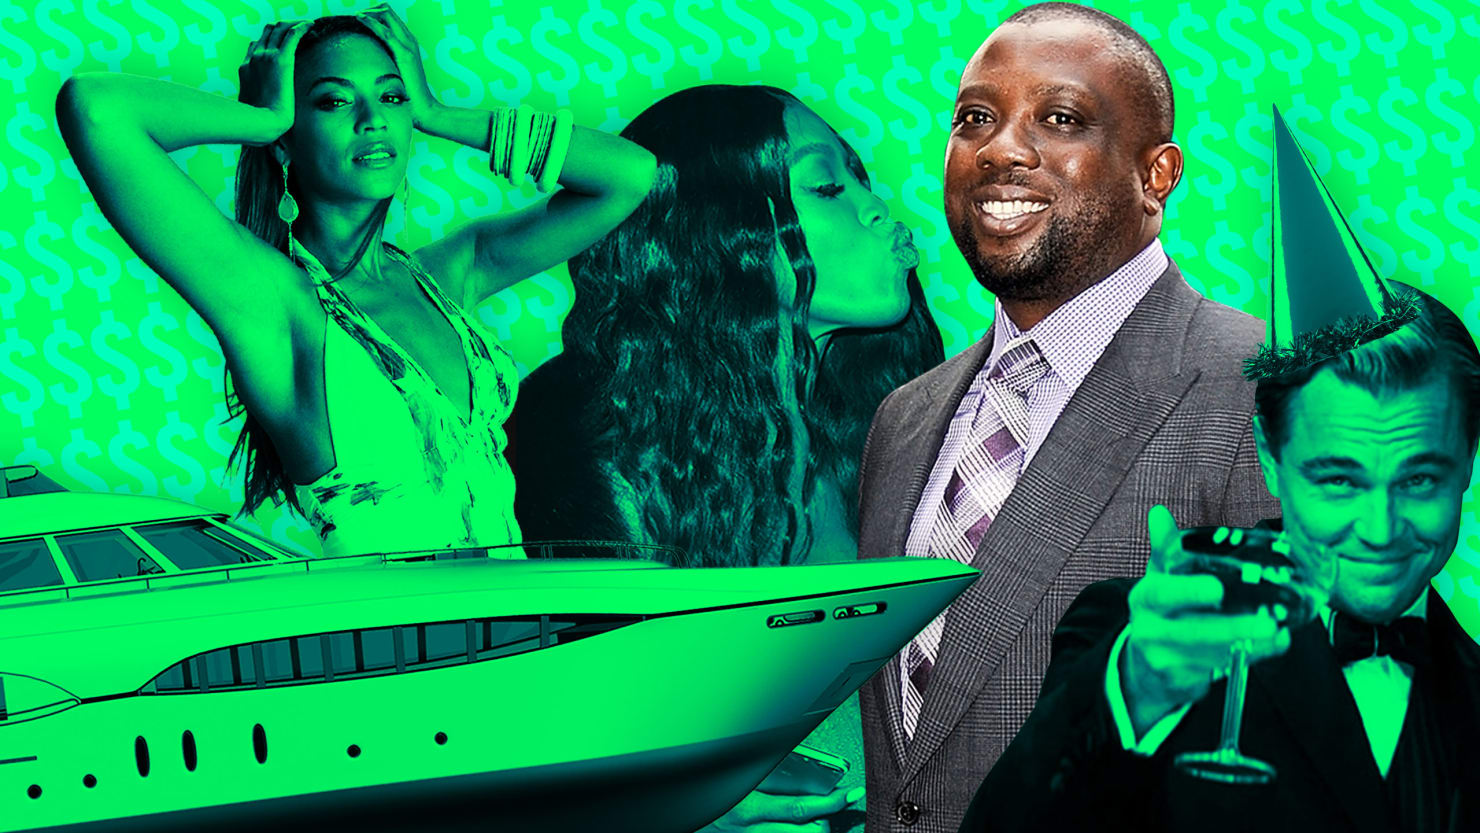 Kola Aluko, The Crooked Playboy Who Courted Naomi Campbell, Threw a Birthday Bash for DiCaprio, and Rented a Yacht to Beyoncé